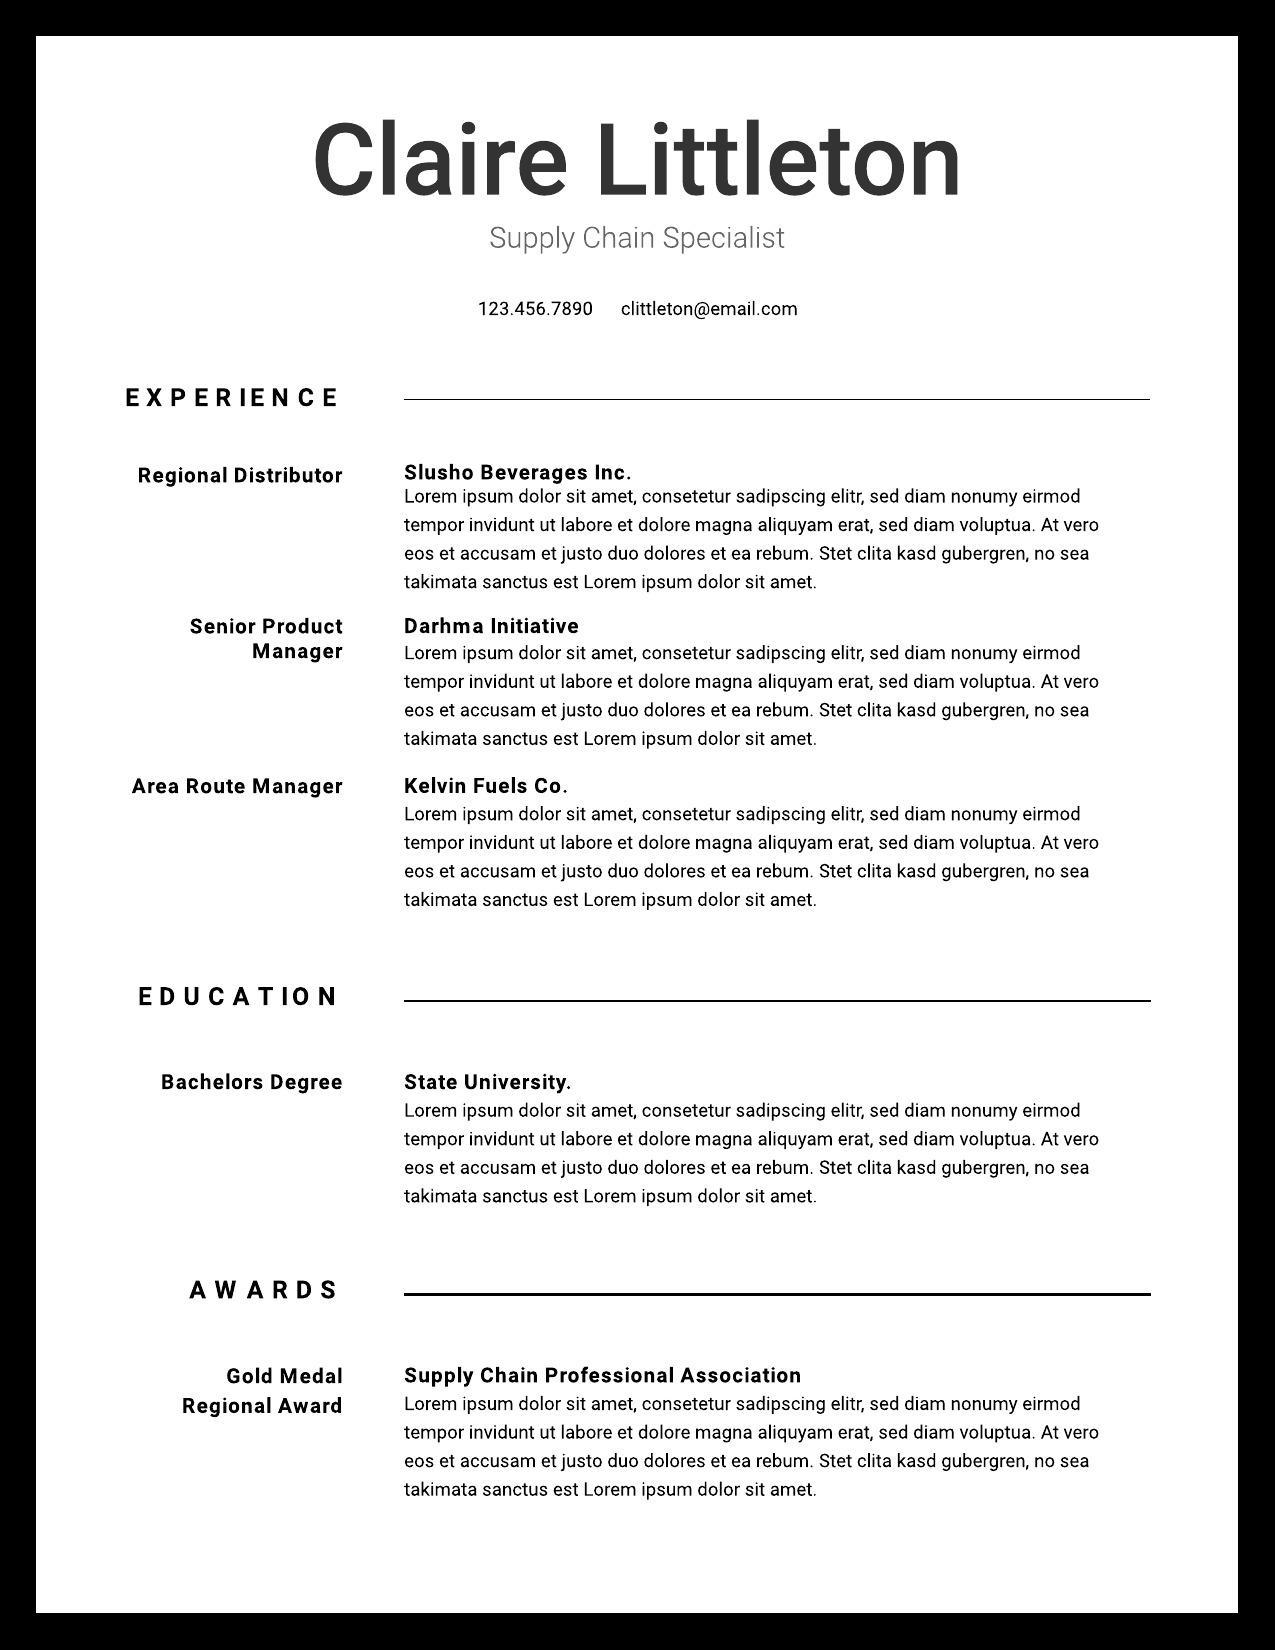 resume examples writing tips for lucidpress experience ideas image09 problem solve first Resume Experience Ideas For Resume